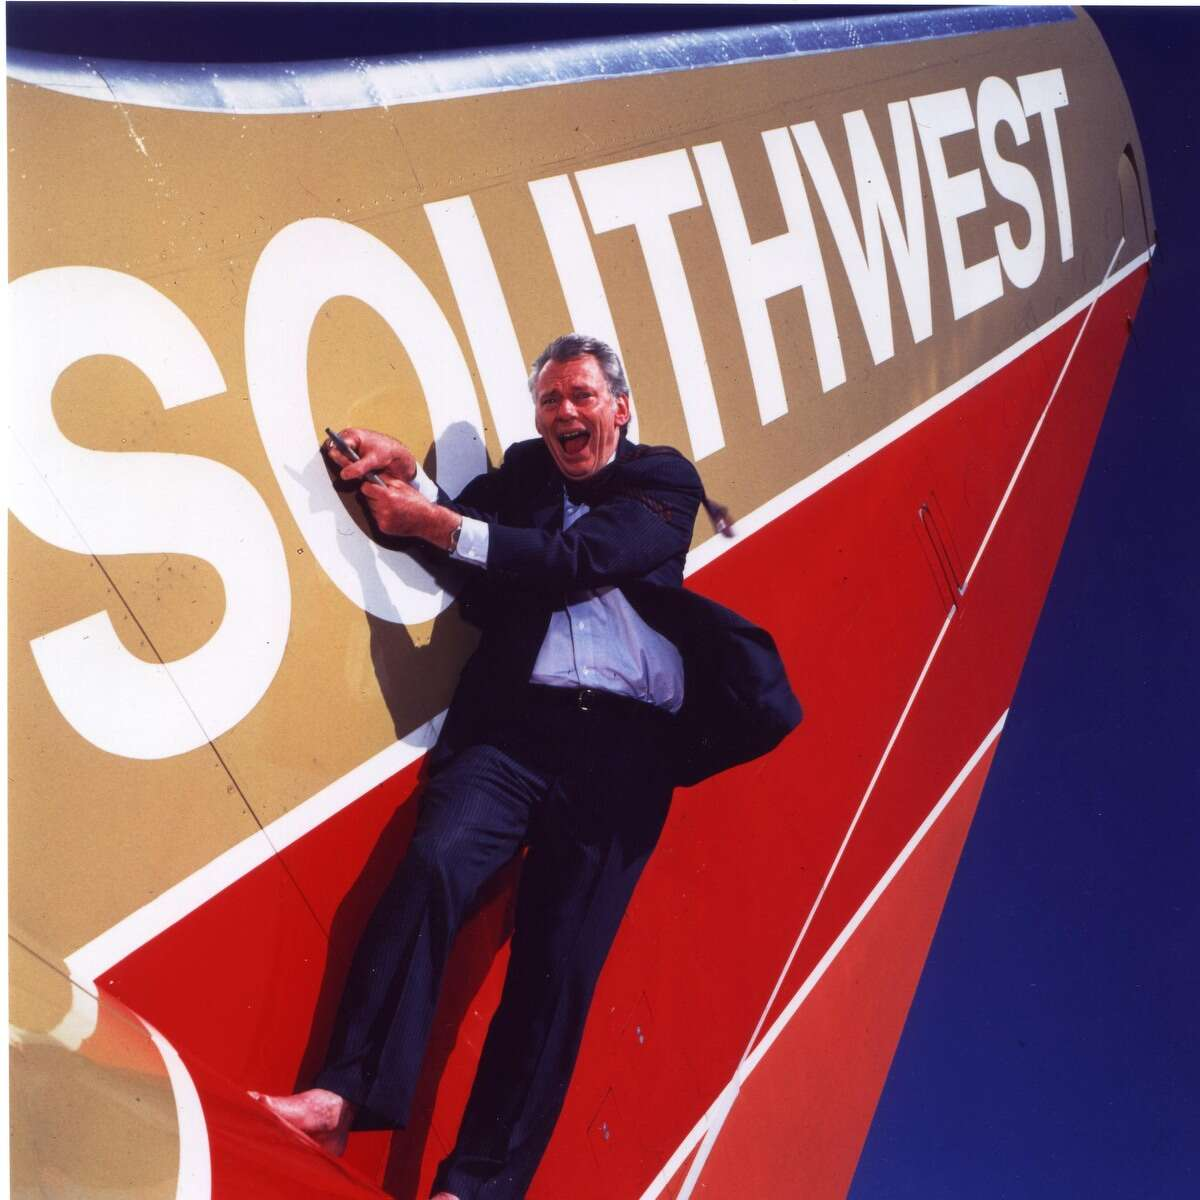 Some of Southwest CEO Herb Kelleher's well-known antics